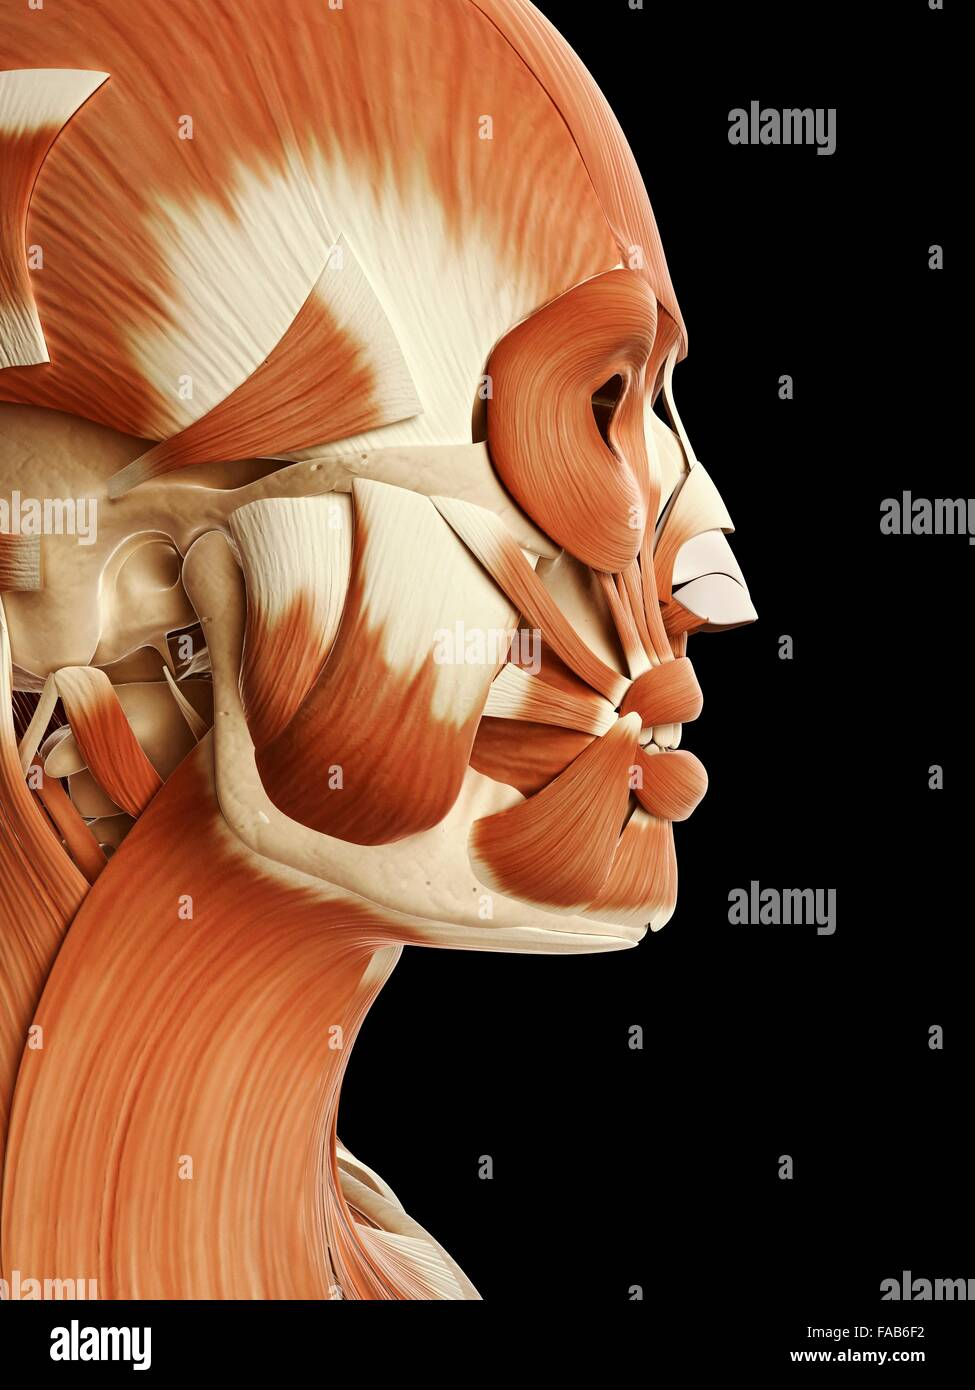 Human muscular system of the head and face, computer illustration ...